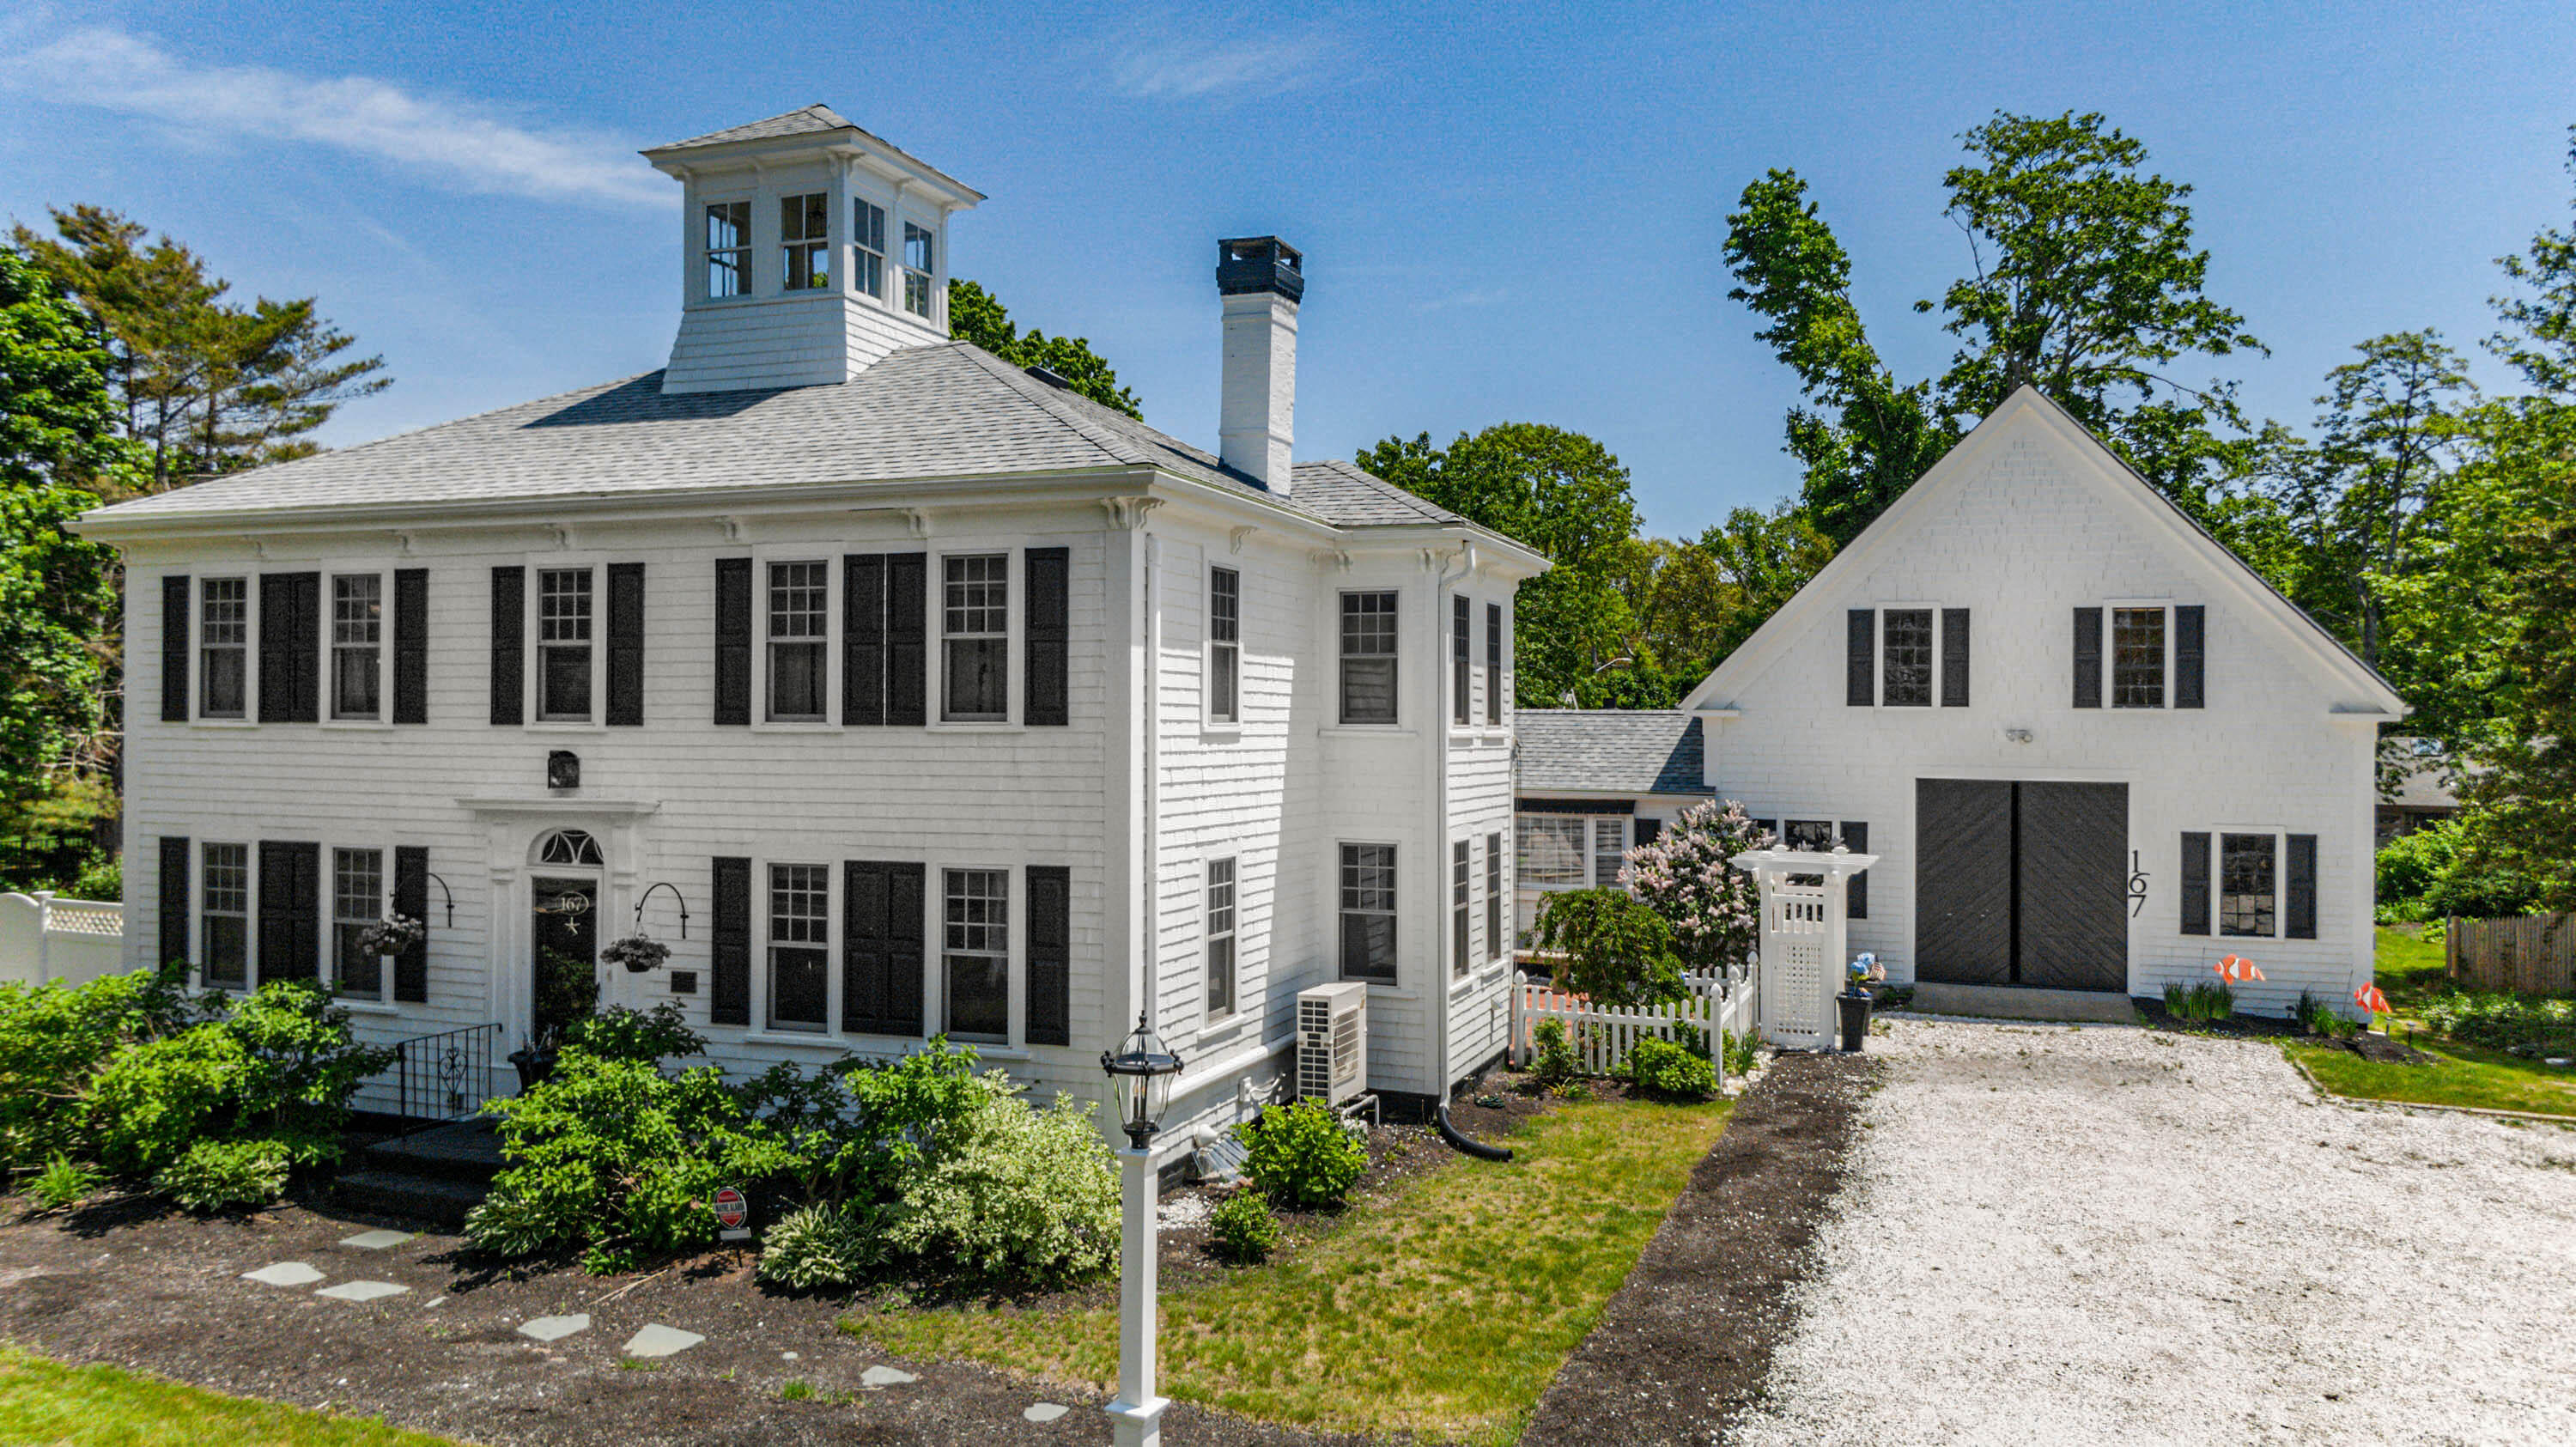 167 Old Main Street, South Yarmouth MA, 02664 details